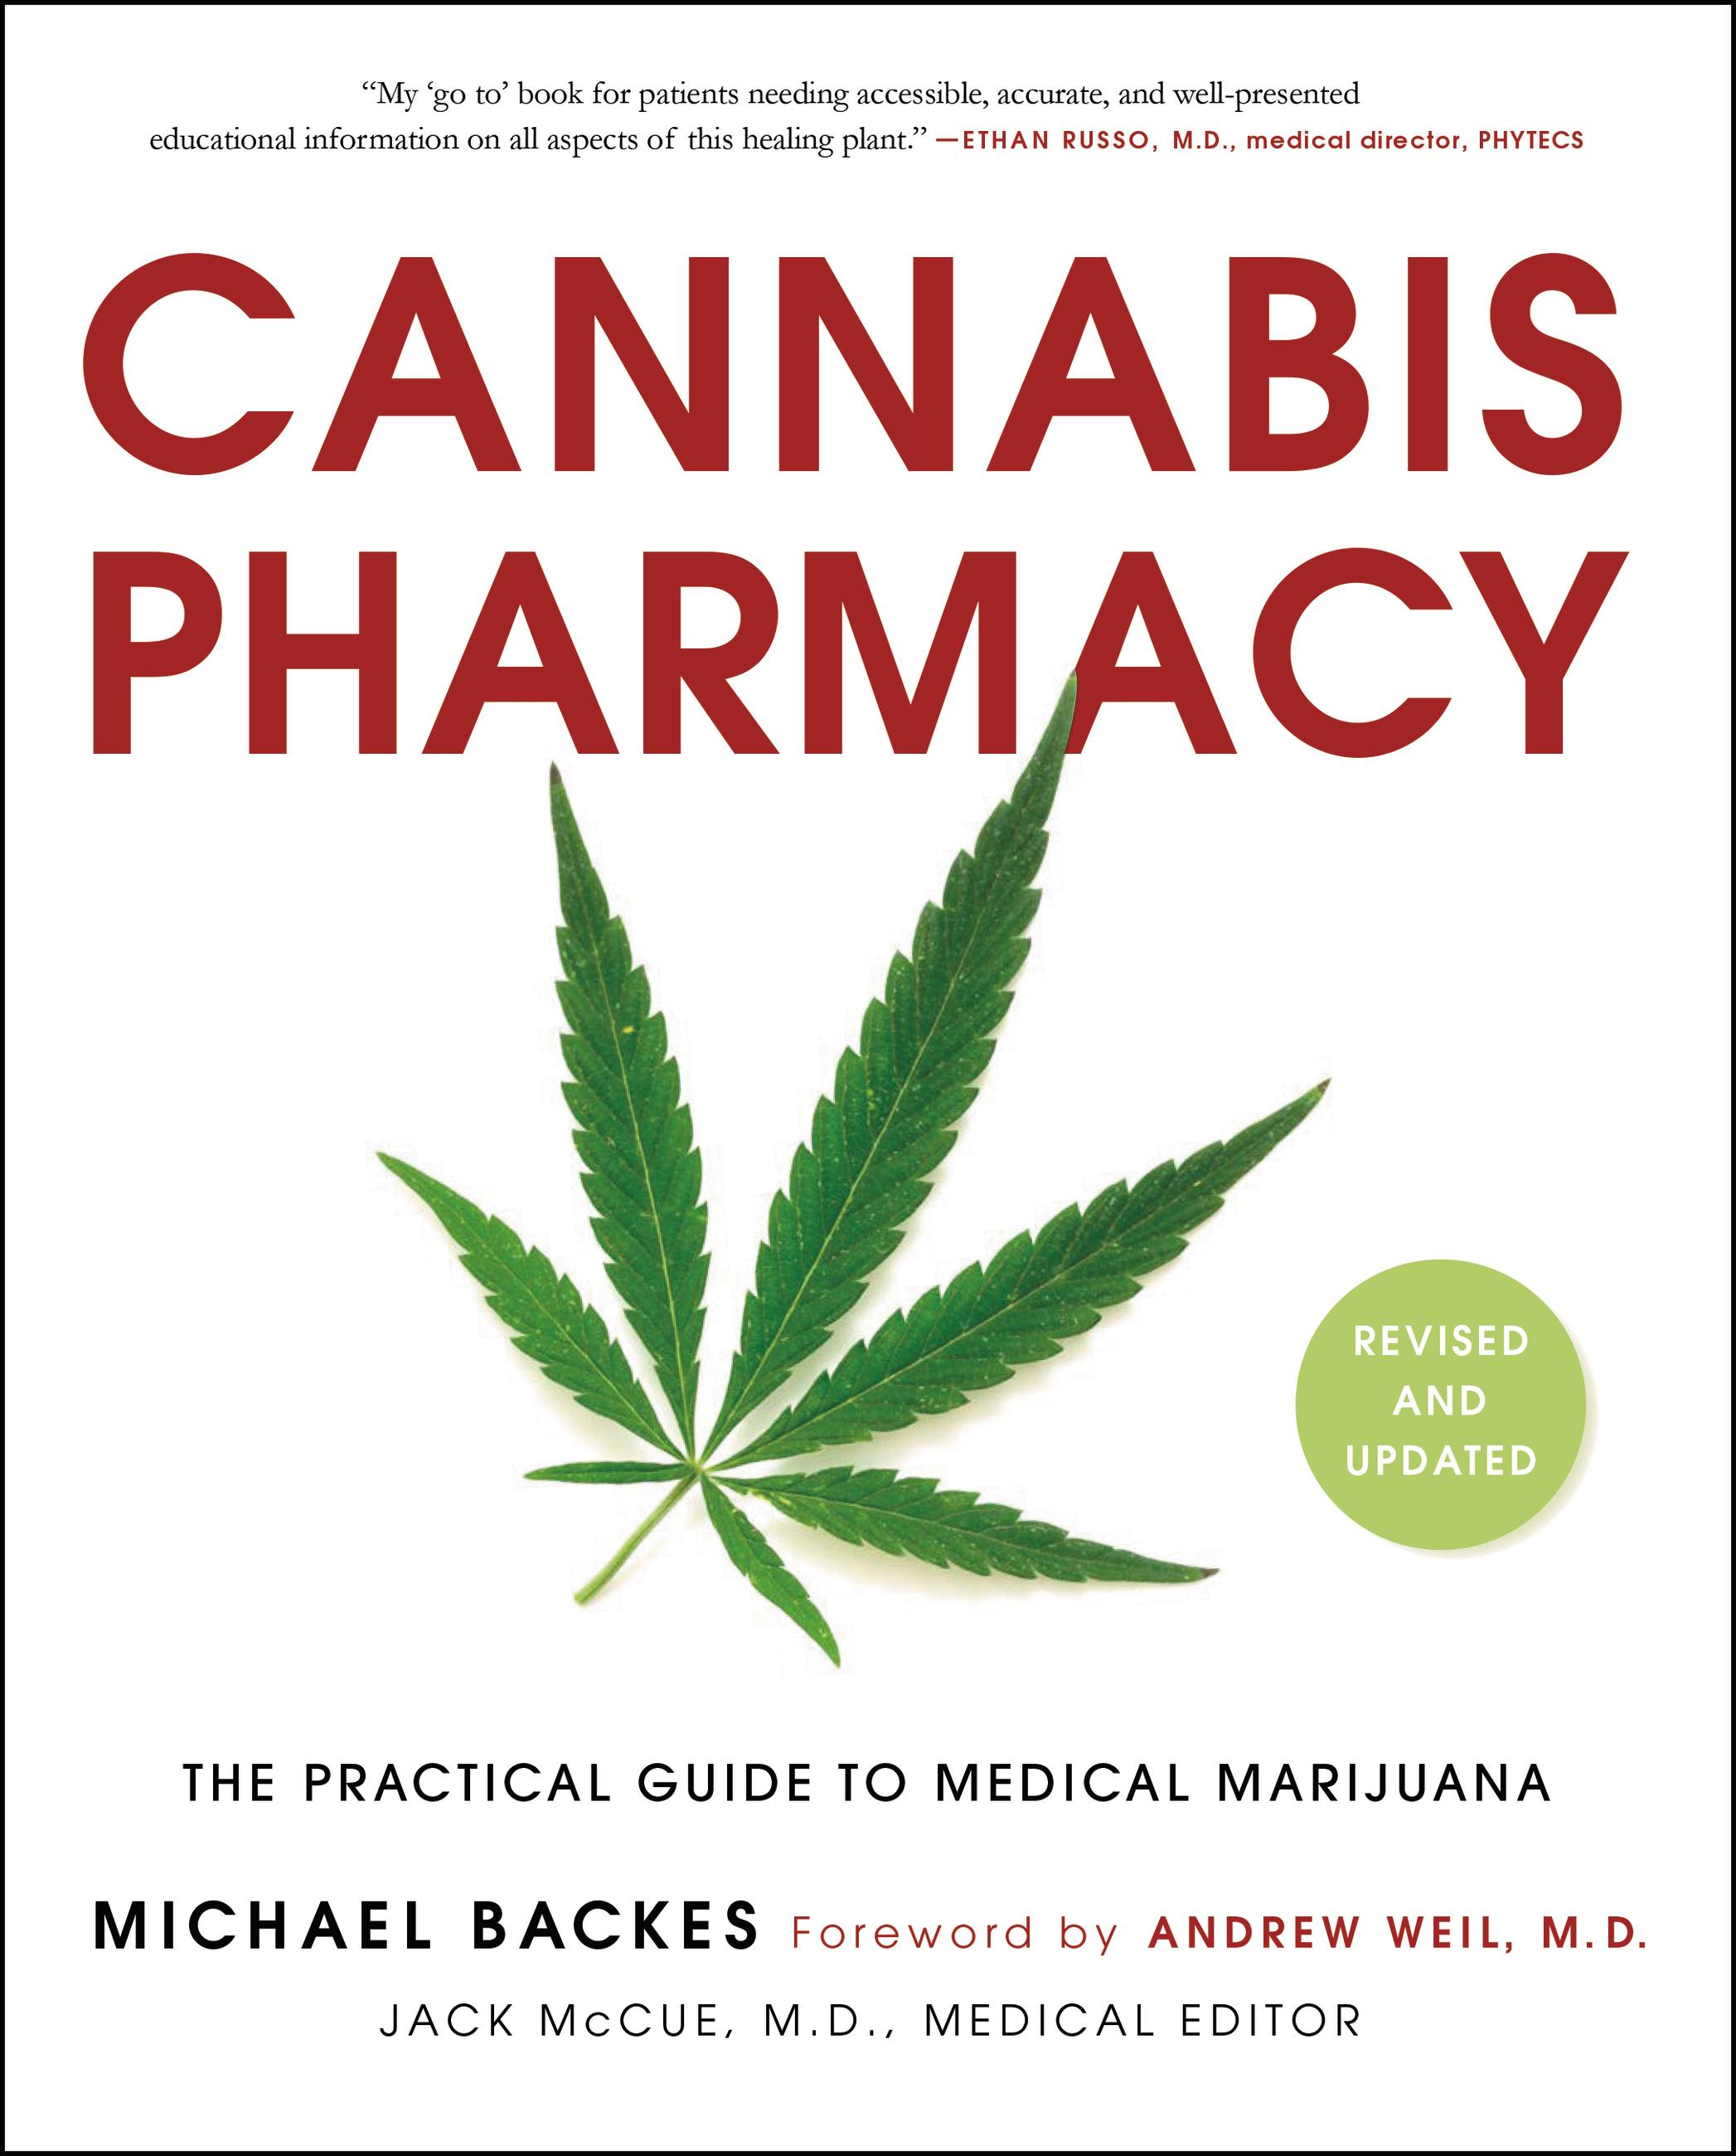 Cannabis Pharmacy The Practical Guide to Medical Marijuana -- Revised and Updated